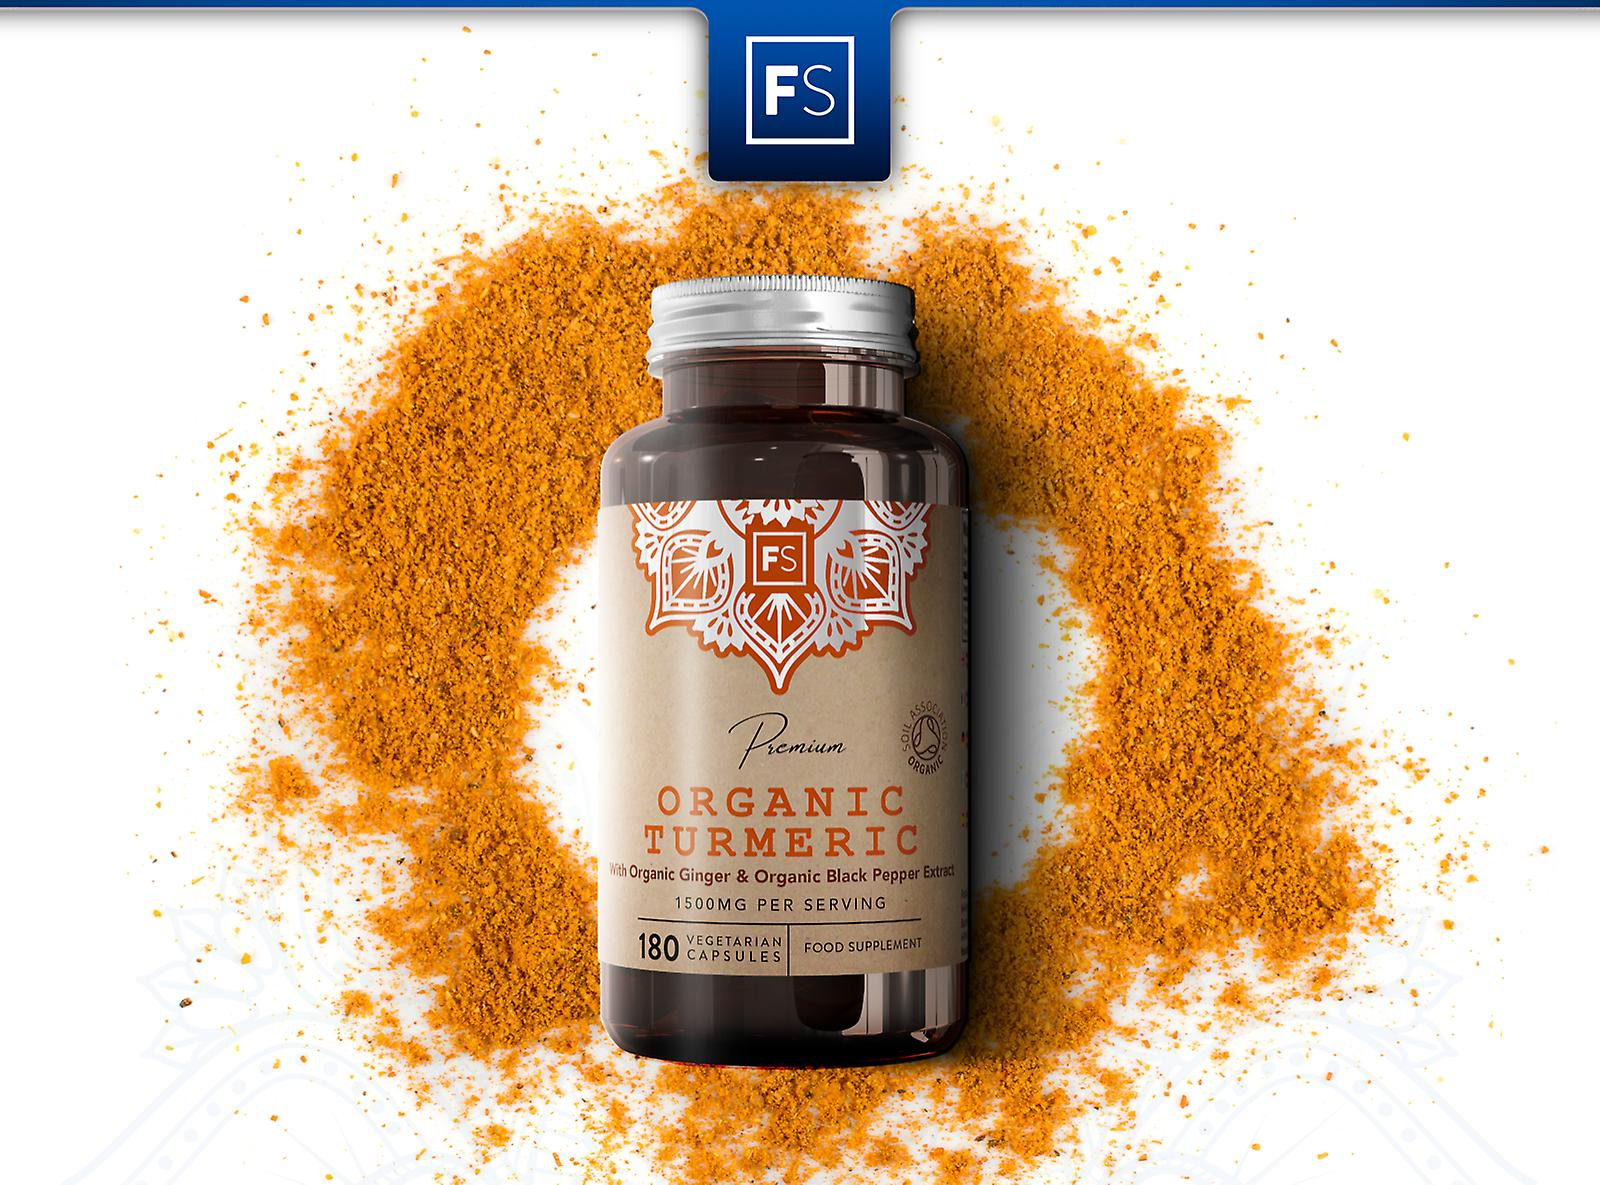 Focus Supplements Turmeric, Ginger & Black Pepper (1500mg) Capsules